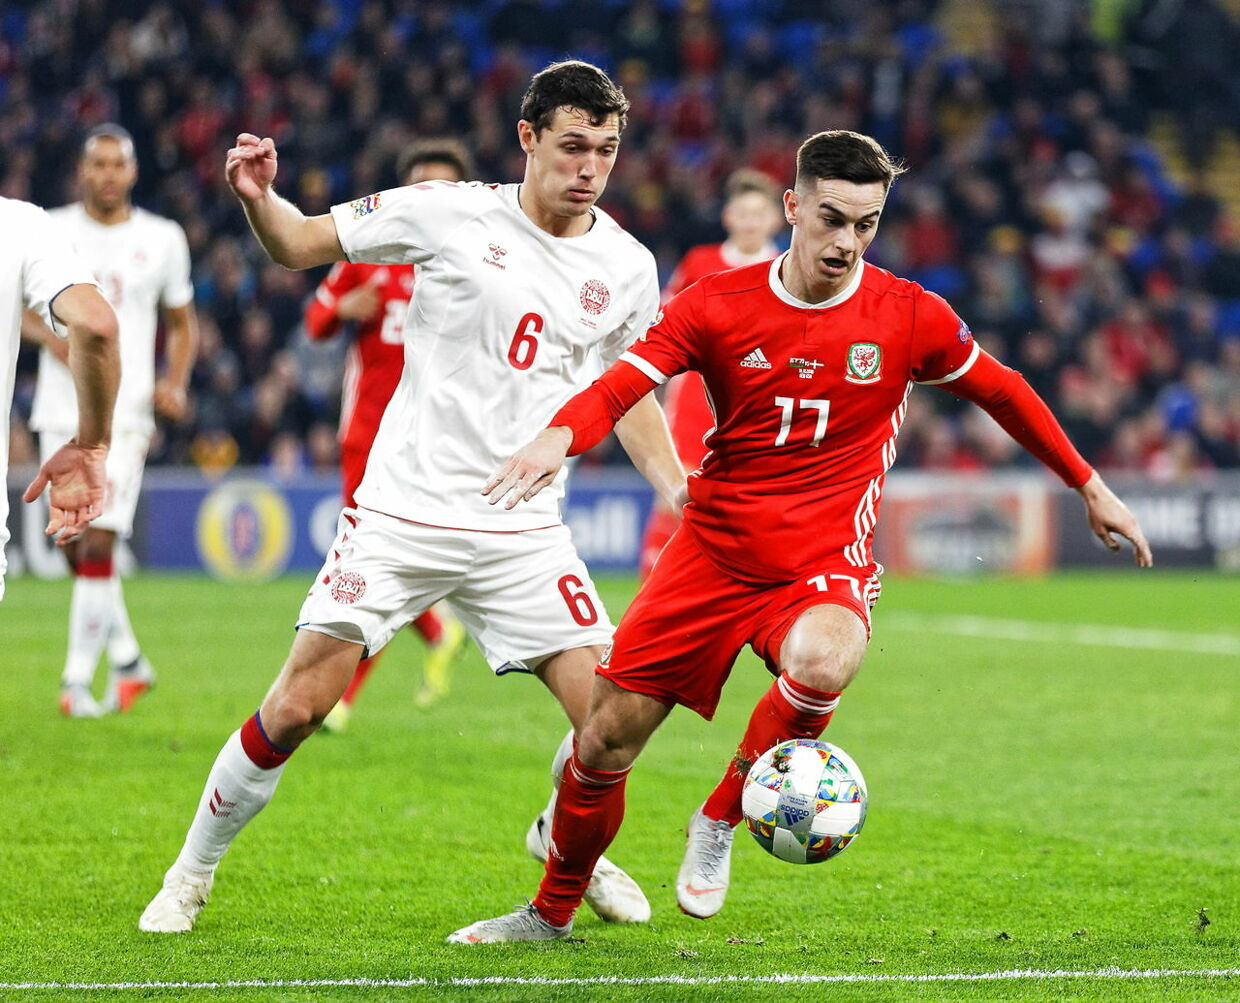 Andreas Christensen i aktion for Danmark mod Wales.